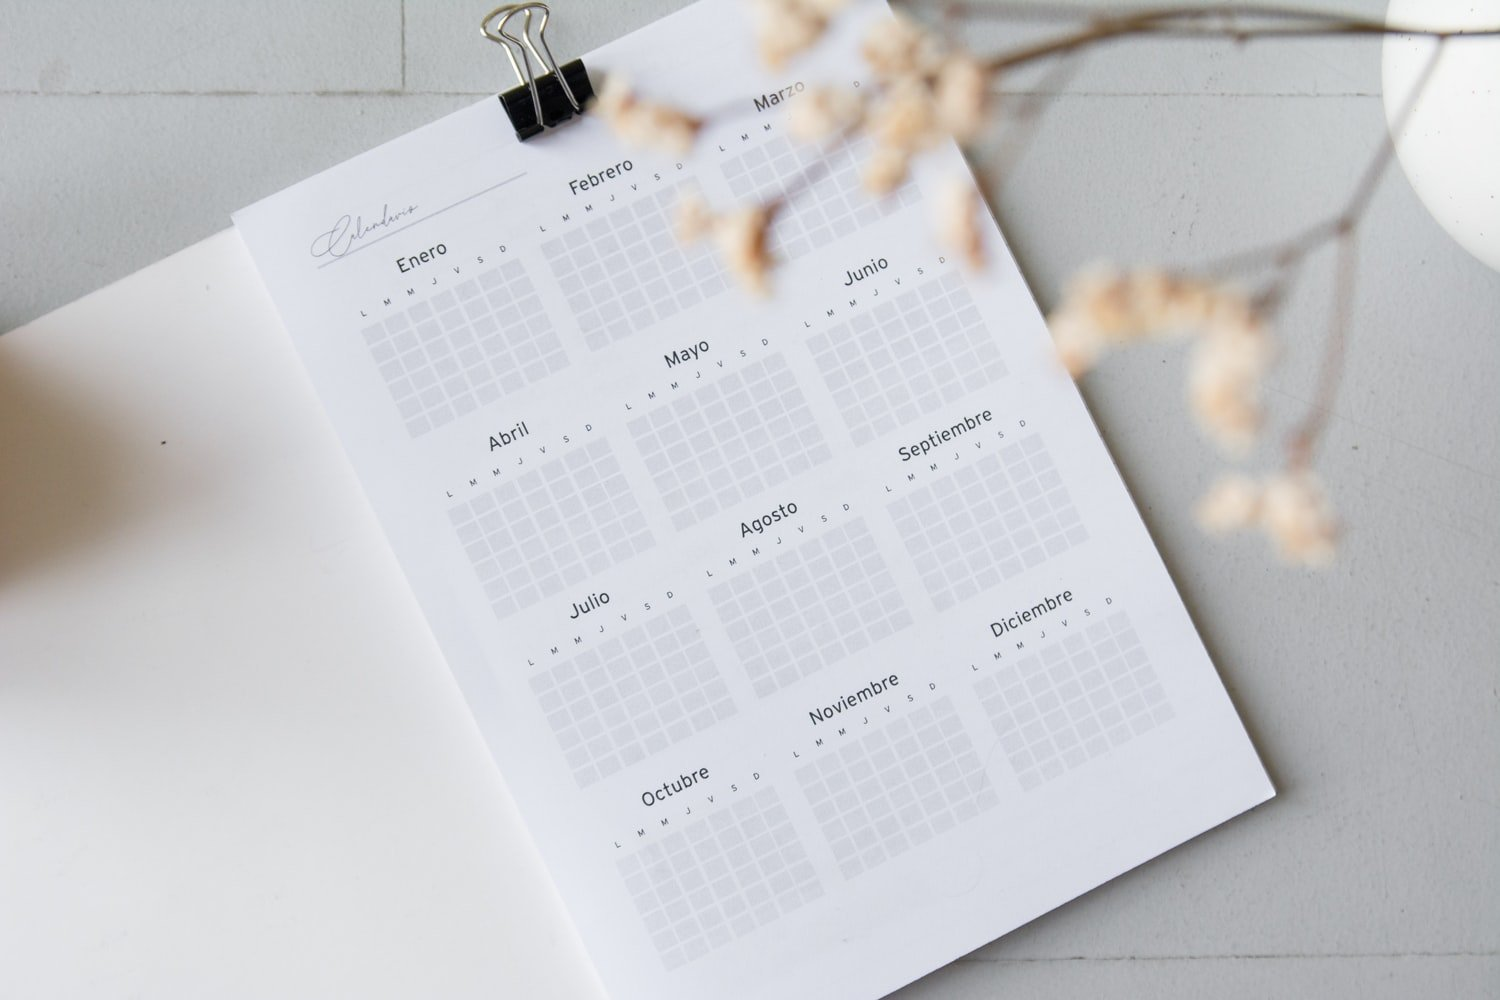 a-stress-free-way-to-prioritizing-tasks-and-ending-busyness